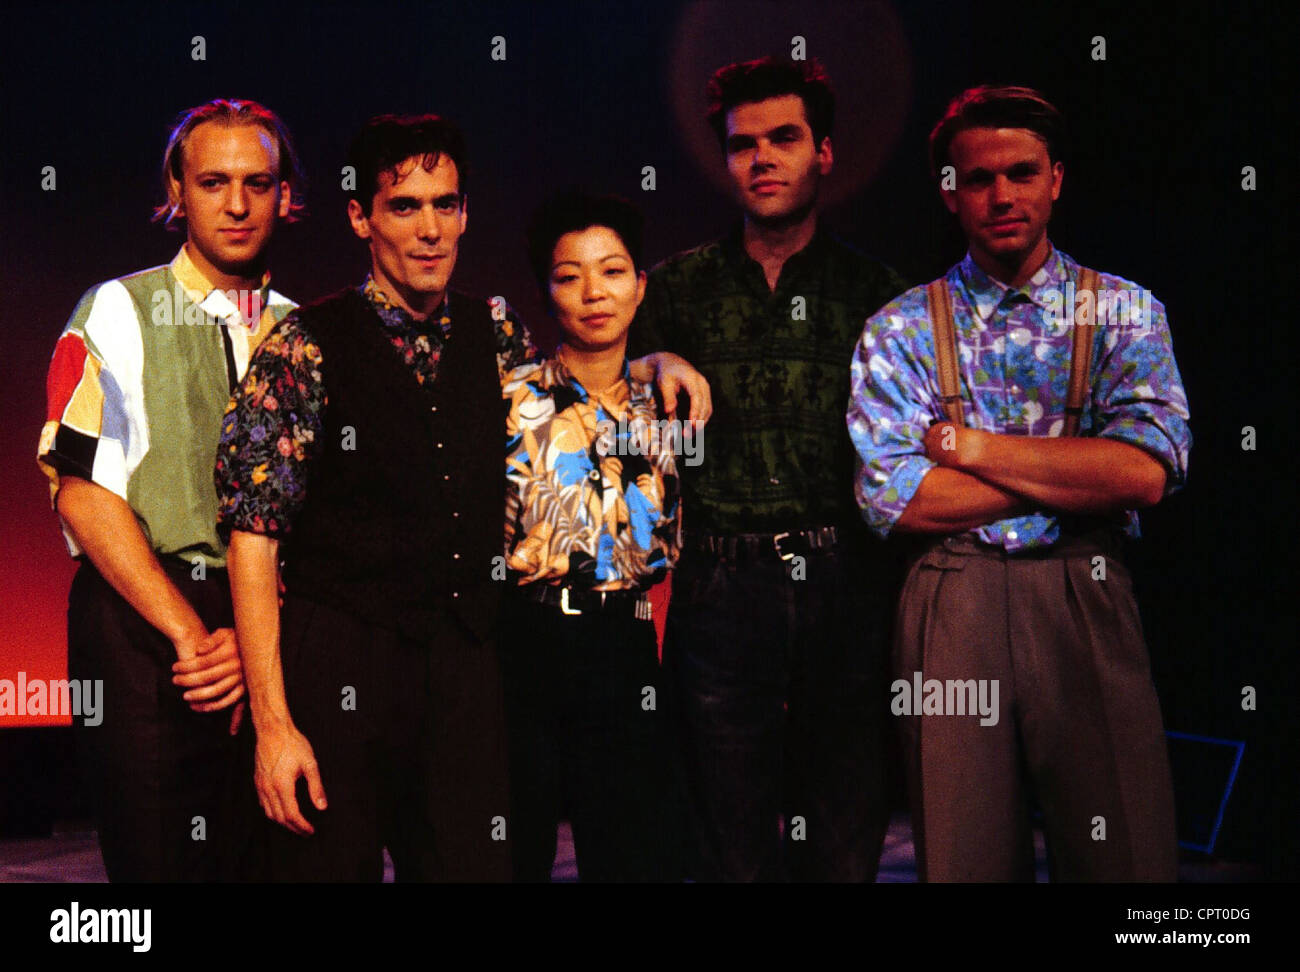 Camouflage German Pop Band Founded In 1983 Group Picture November 1989